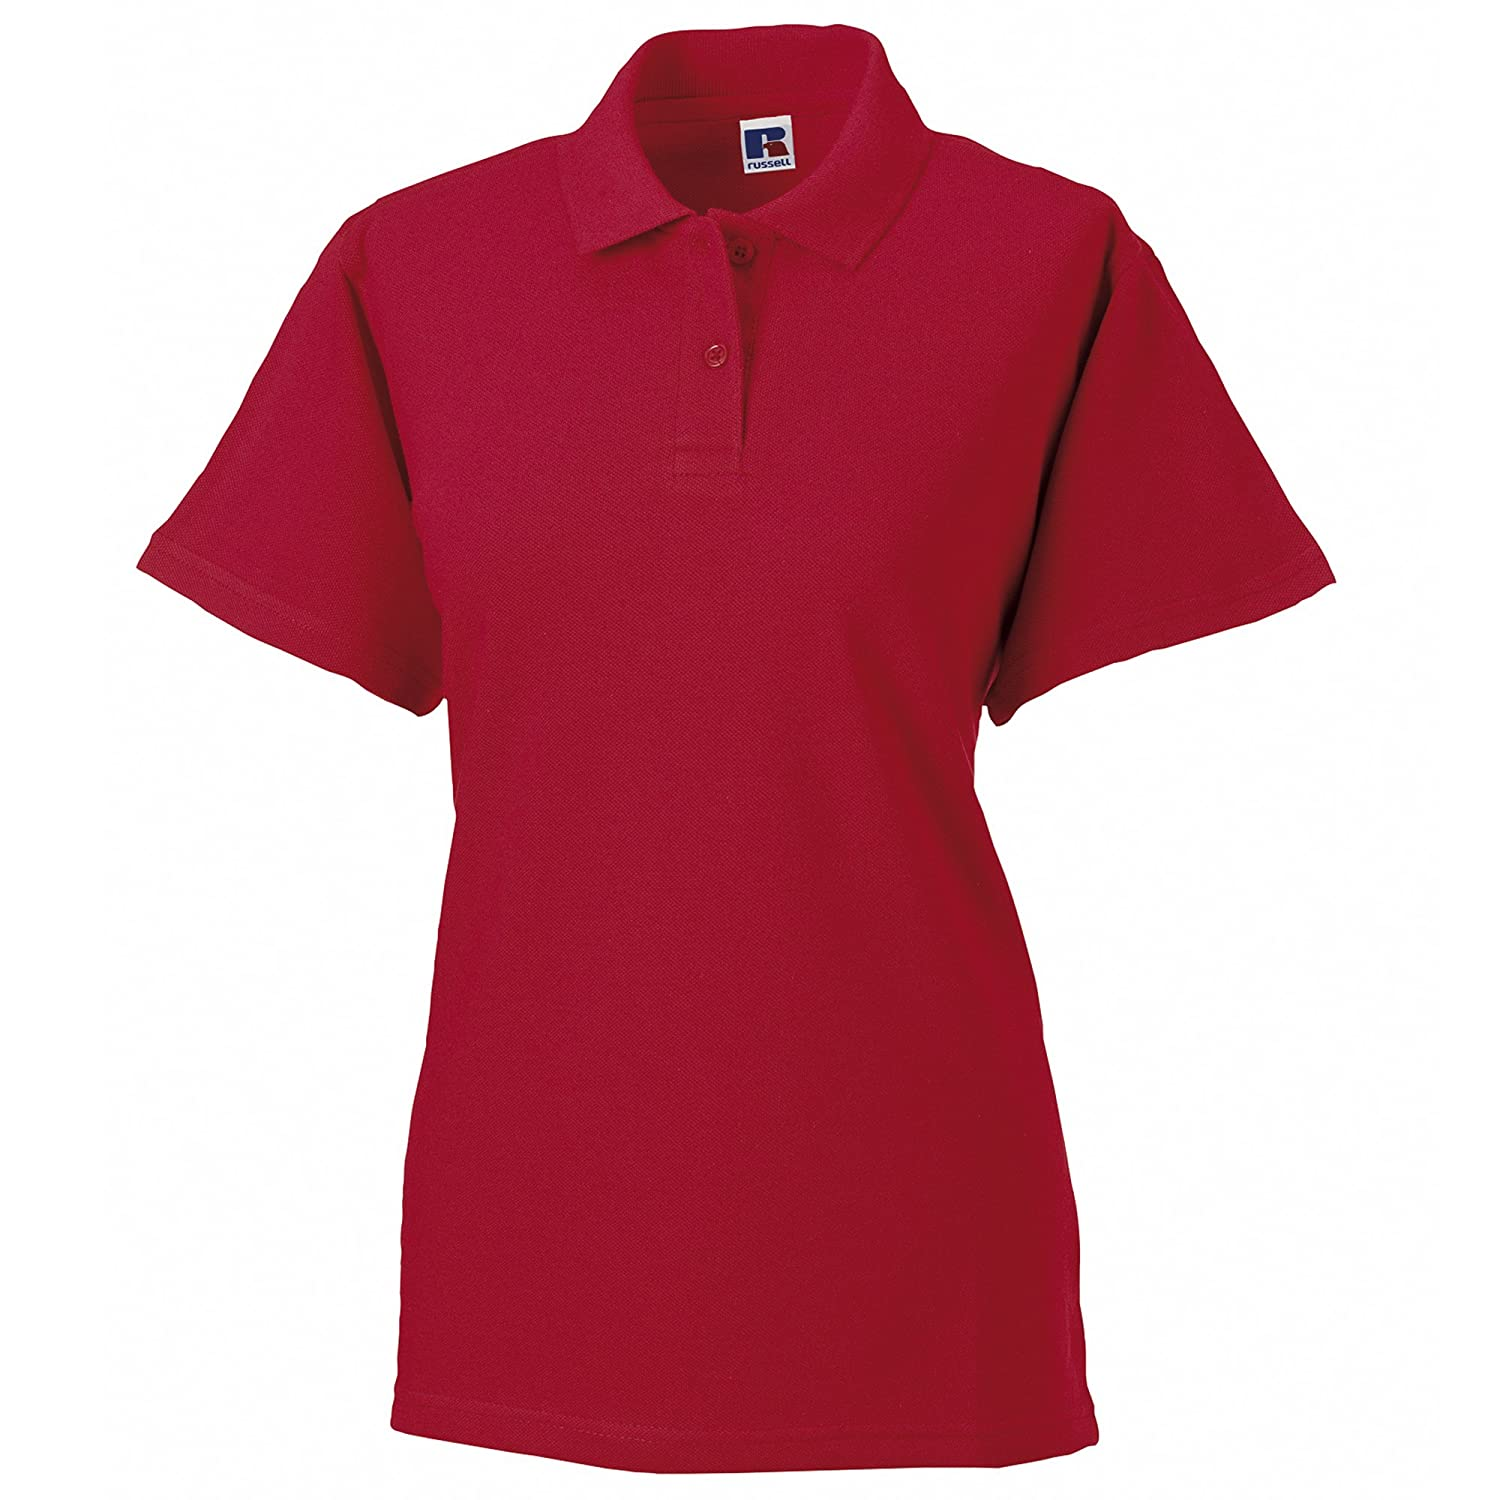 Russell Europe Womens//Ladies Classic Cotton Short Sleeve Polo Shirt